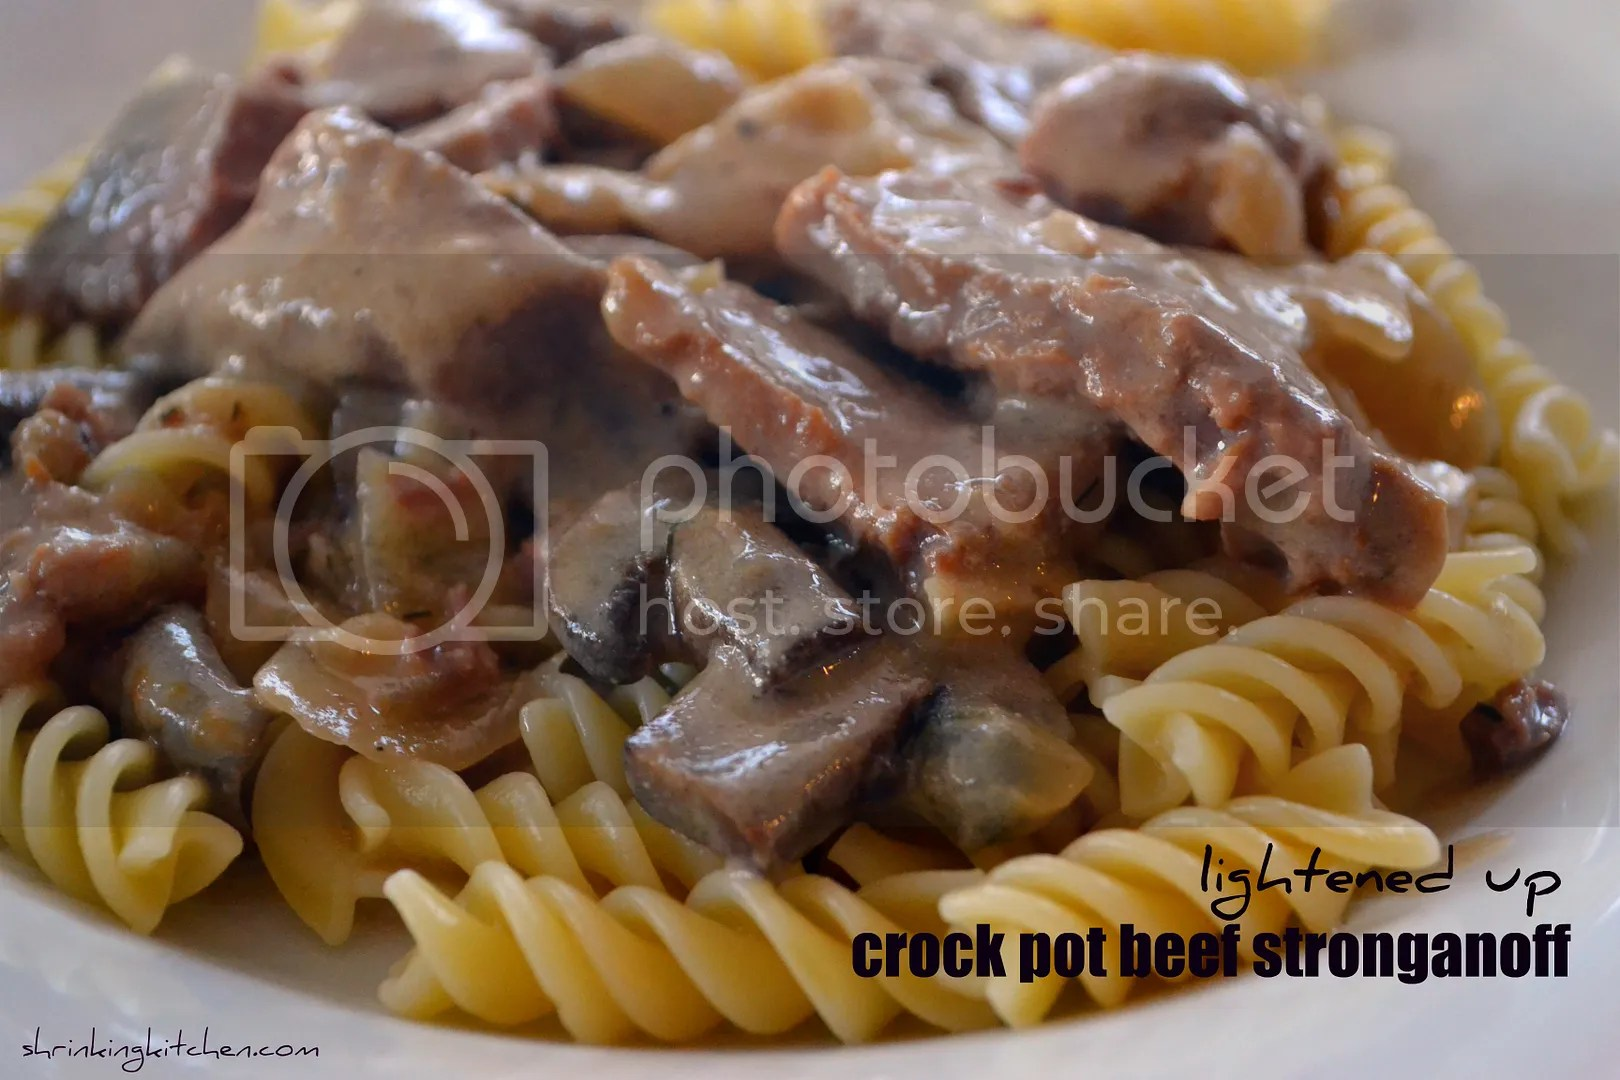 Lightened Up Crock Pot Beef Stroganoff